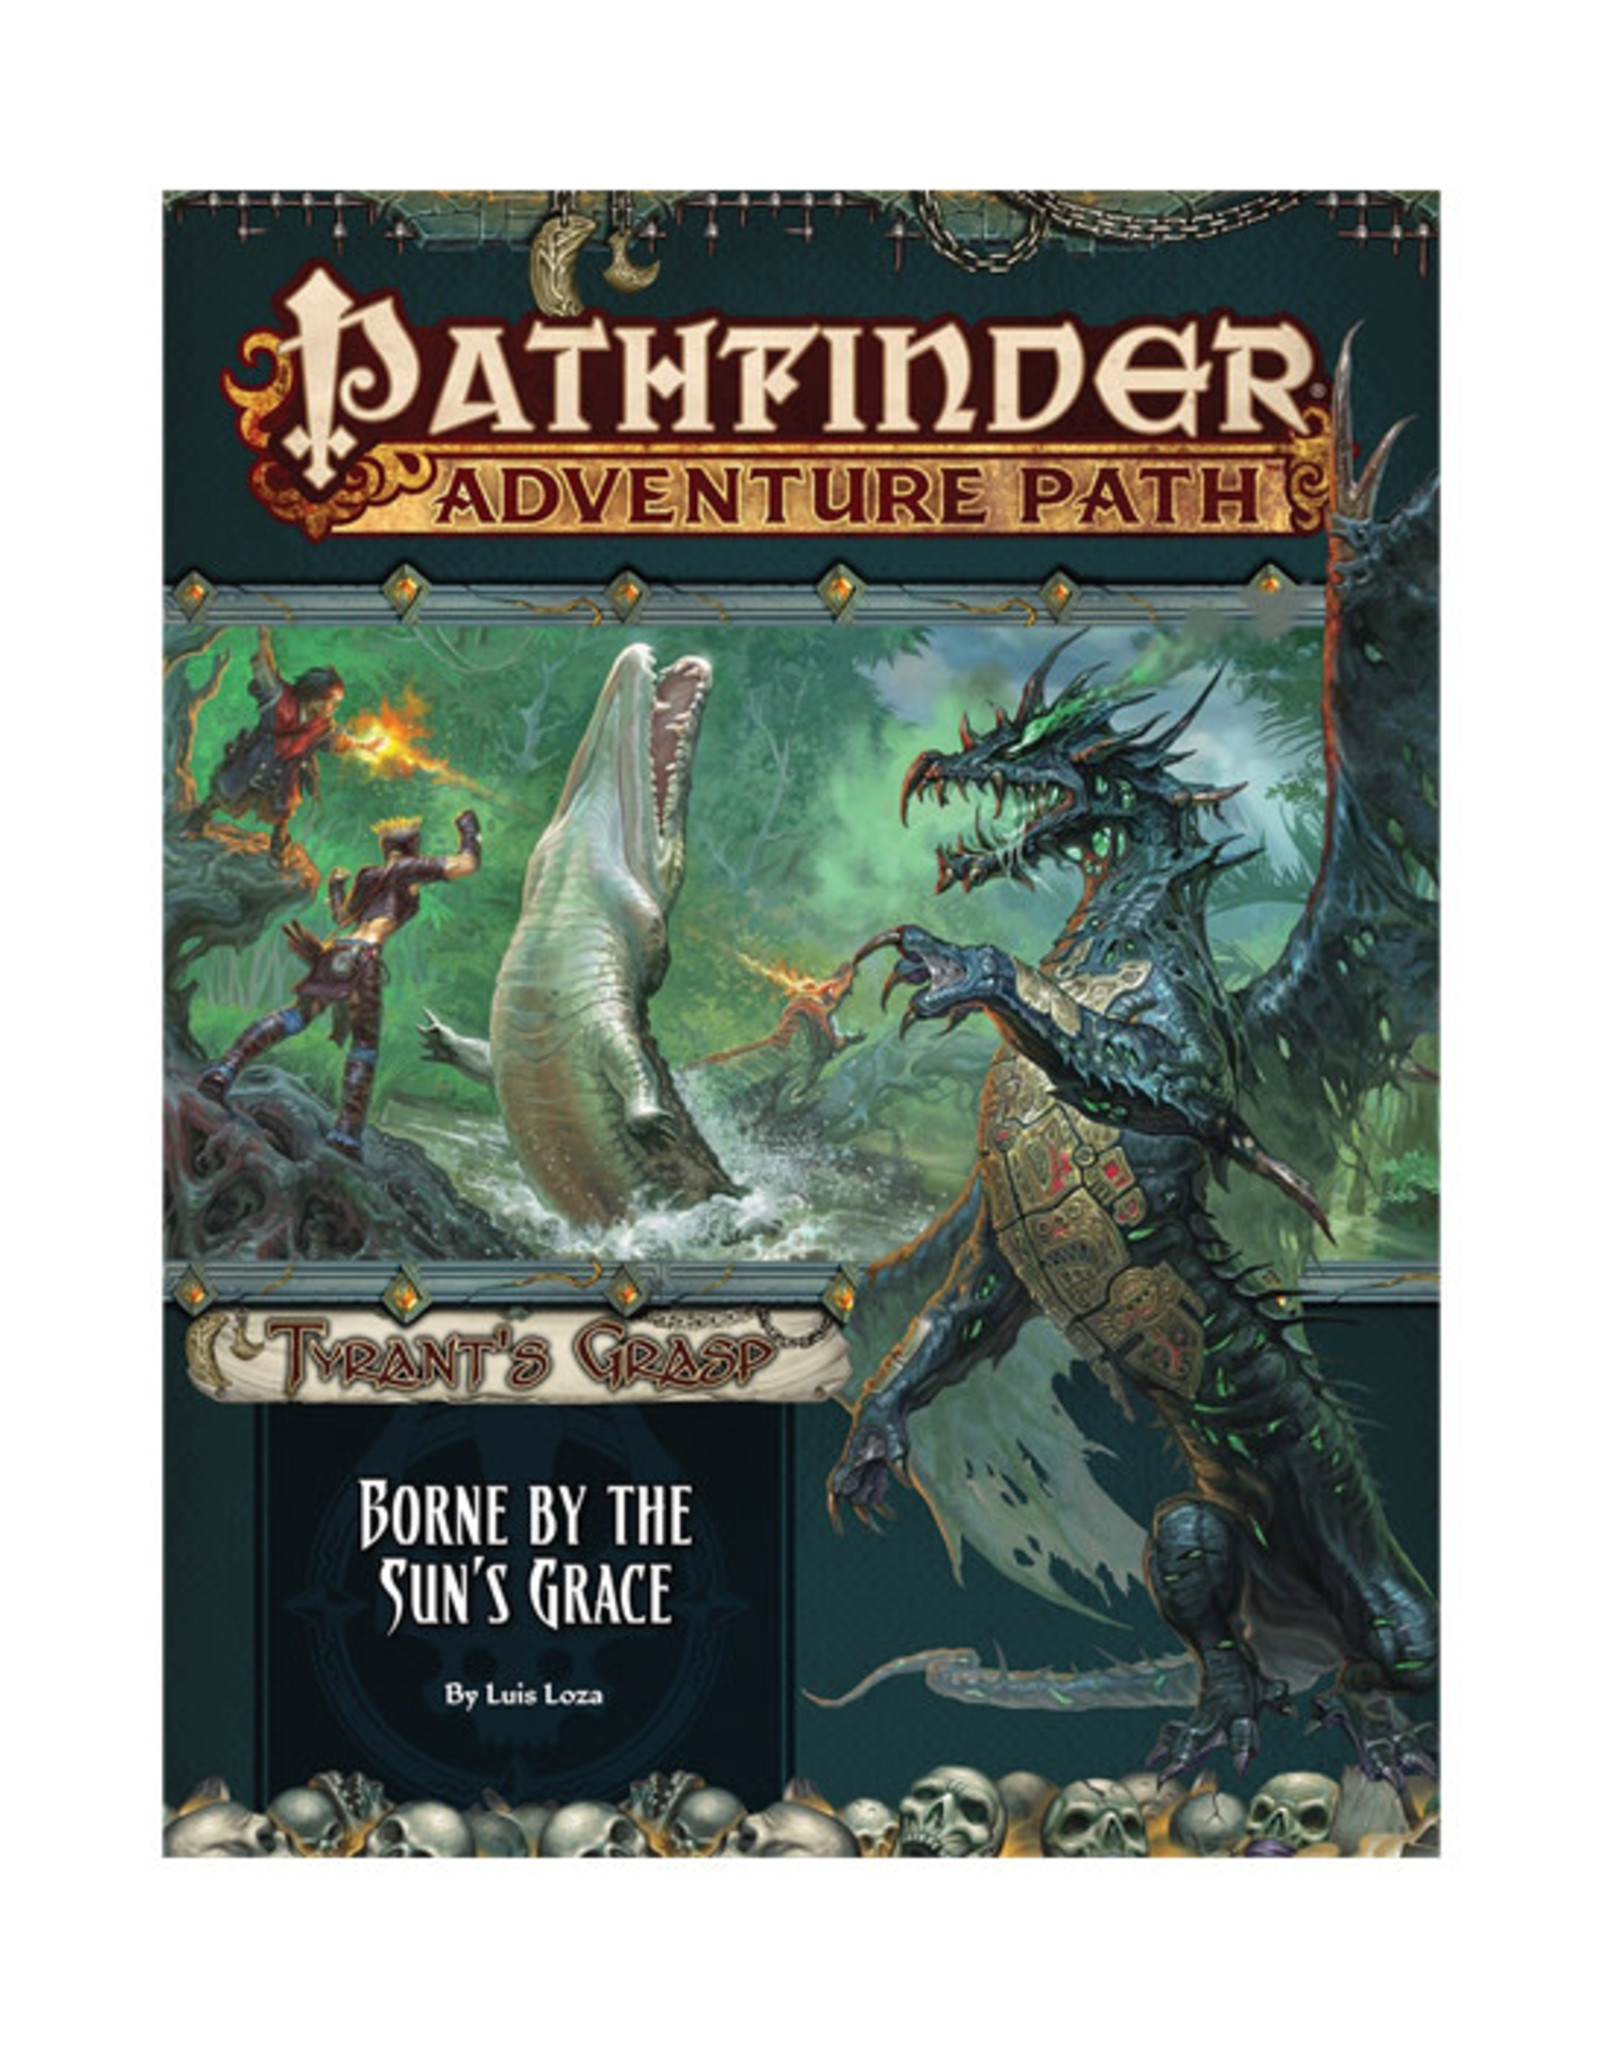 Pathfinder Pathfinder: Adventure Path - Tyrant's Grasp - Borne by the Sun's Grace